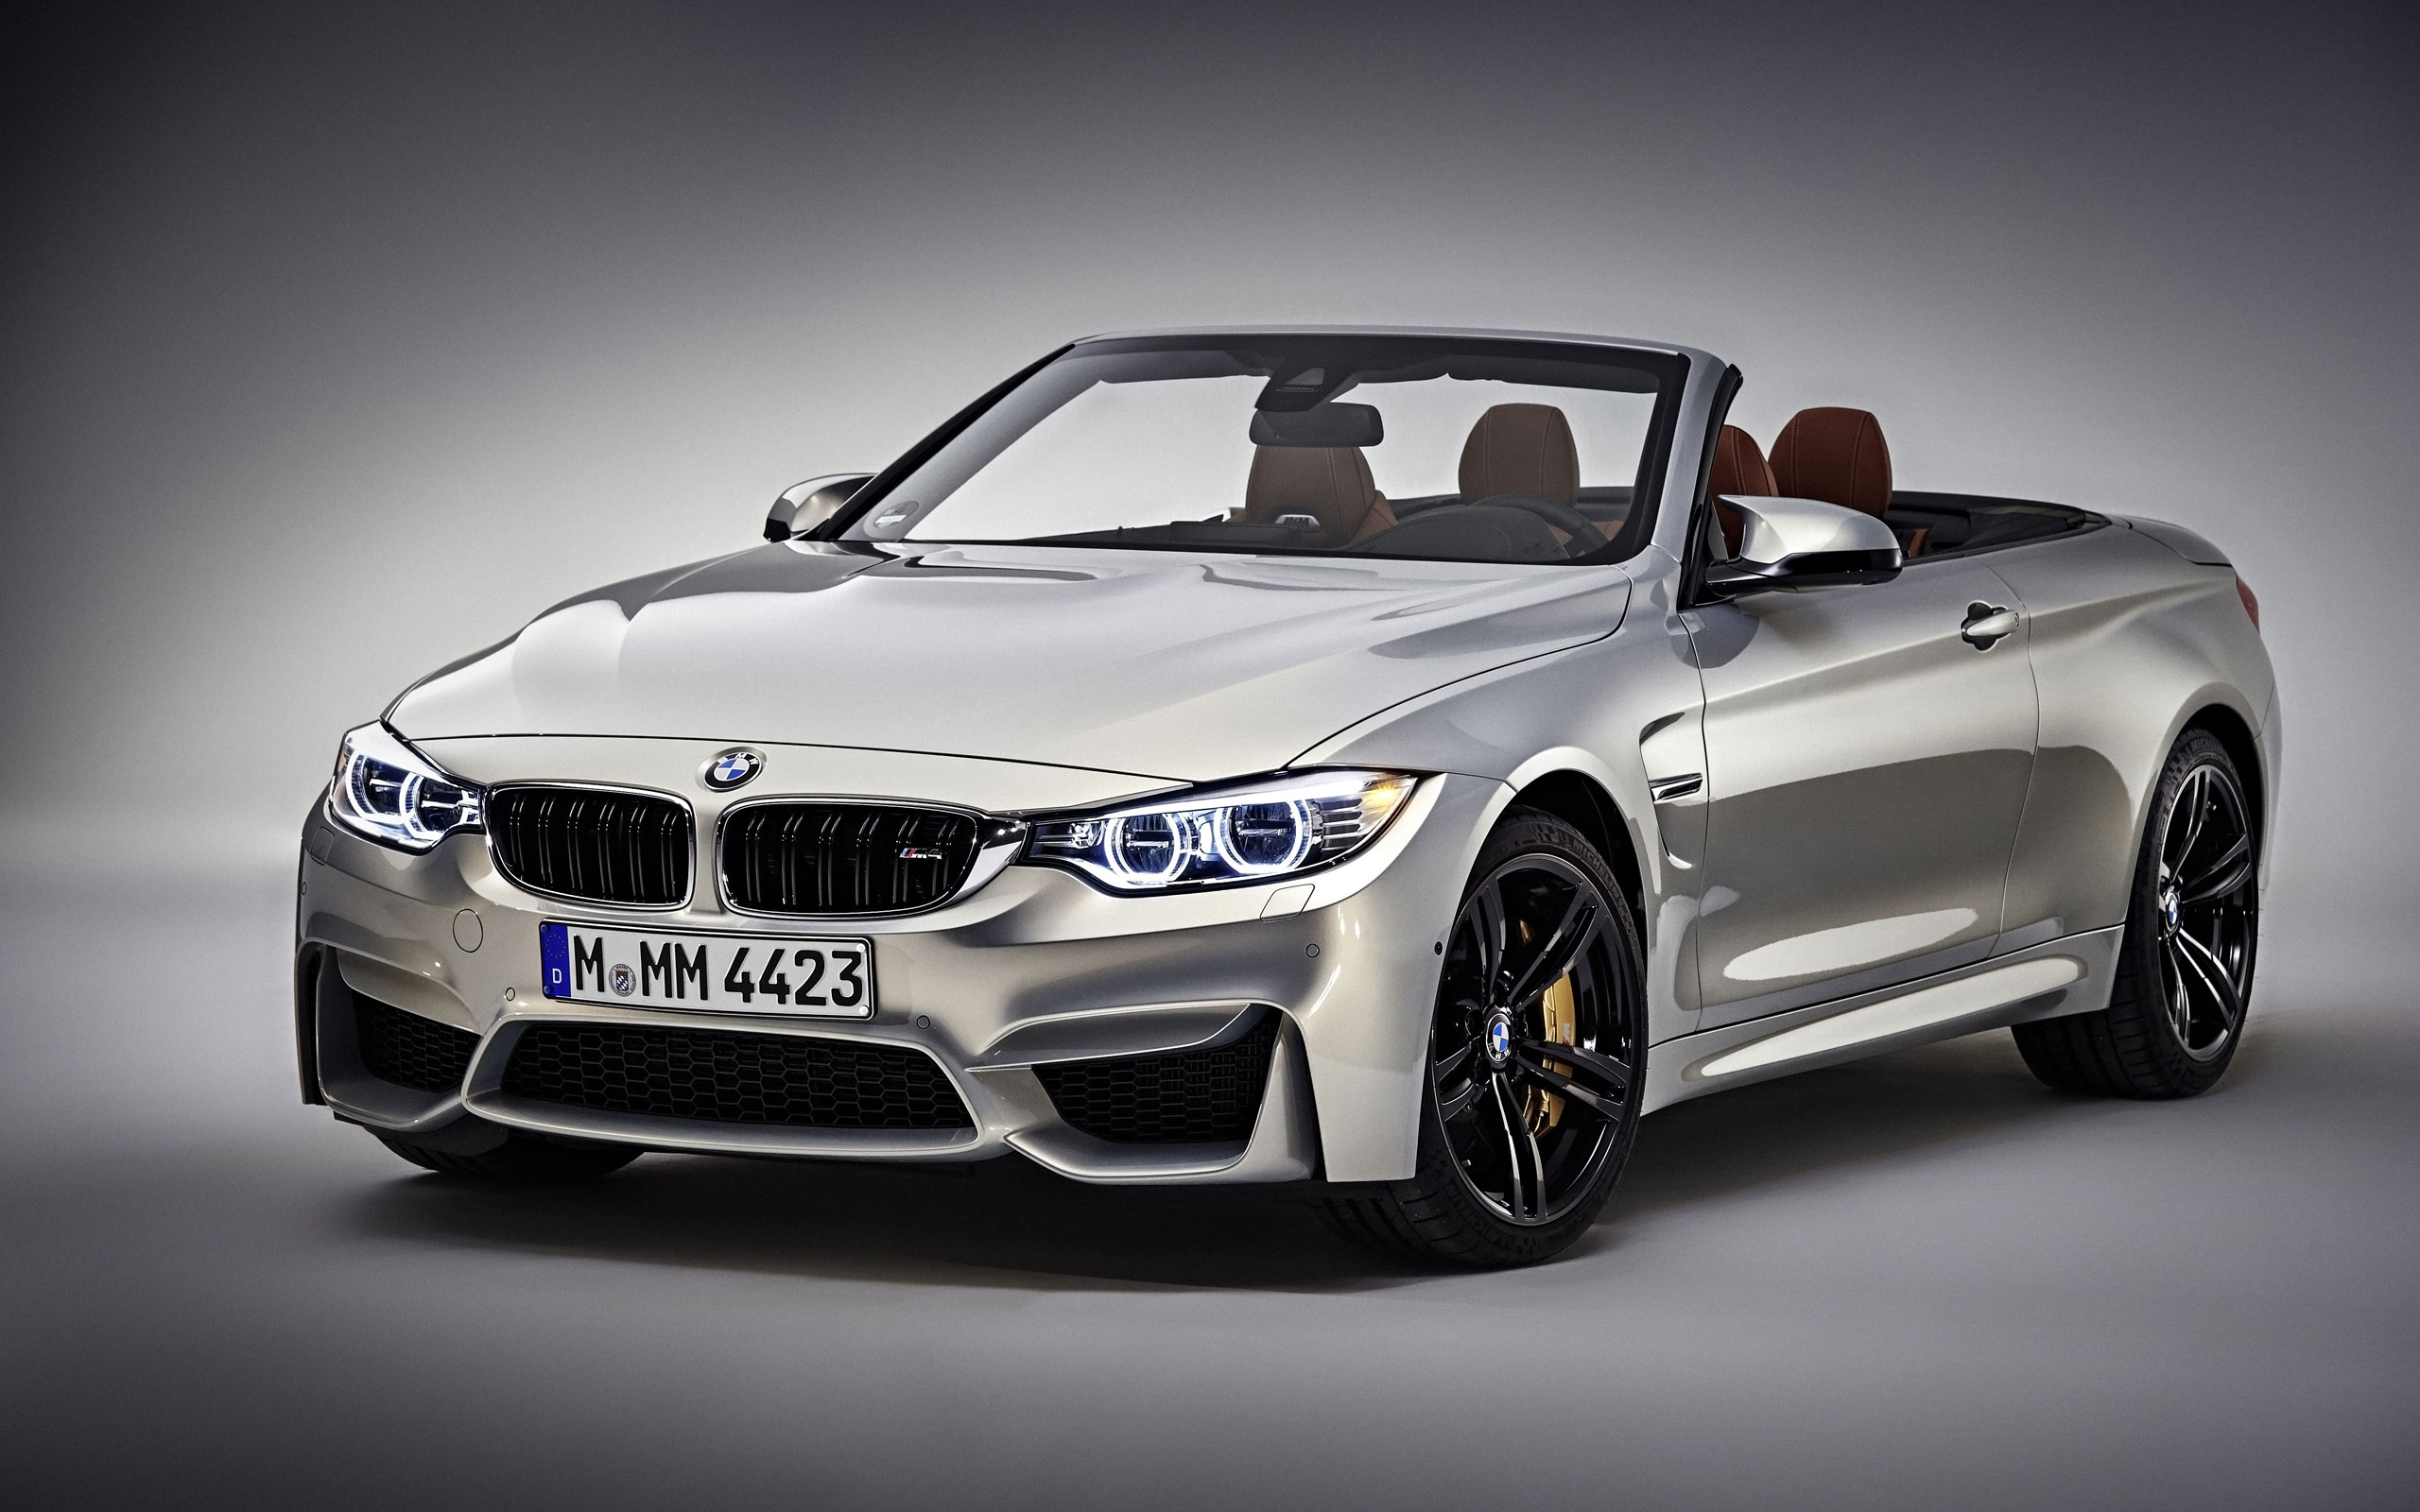 2015 BMW M4 Convertible Wallpaper HD Car Wallpapers 2560x1600